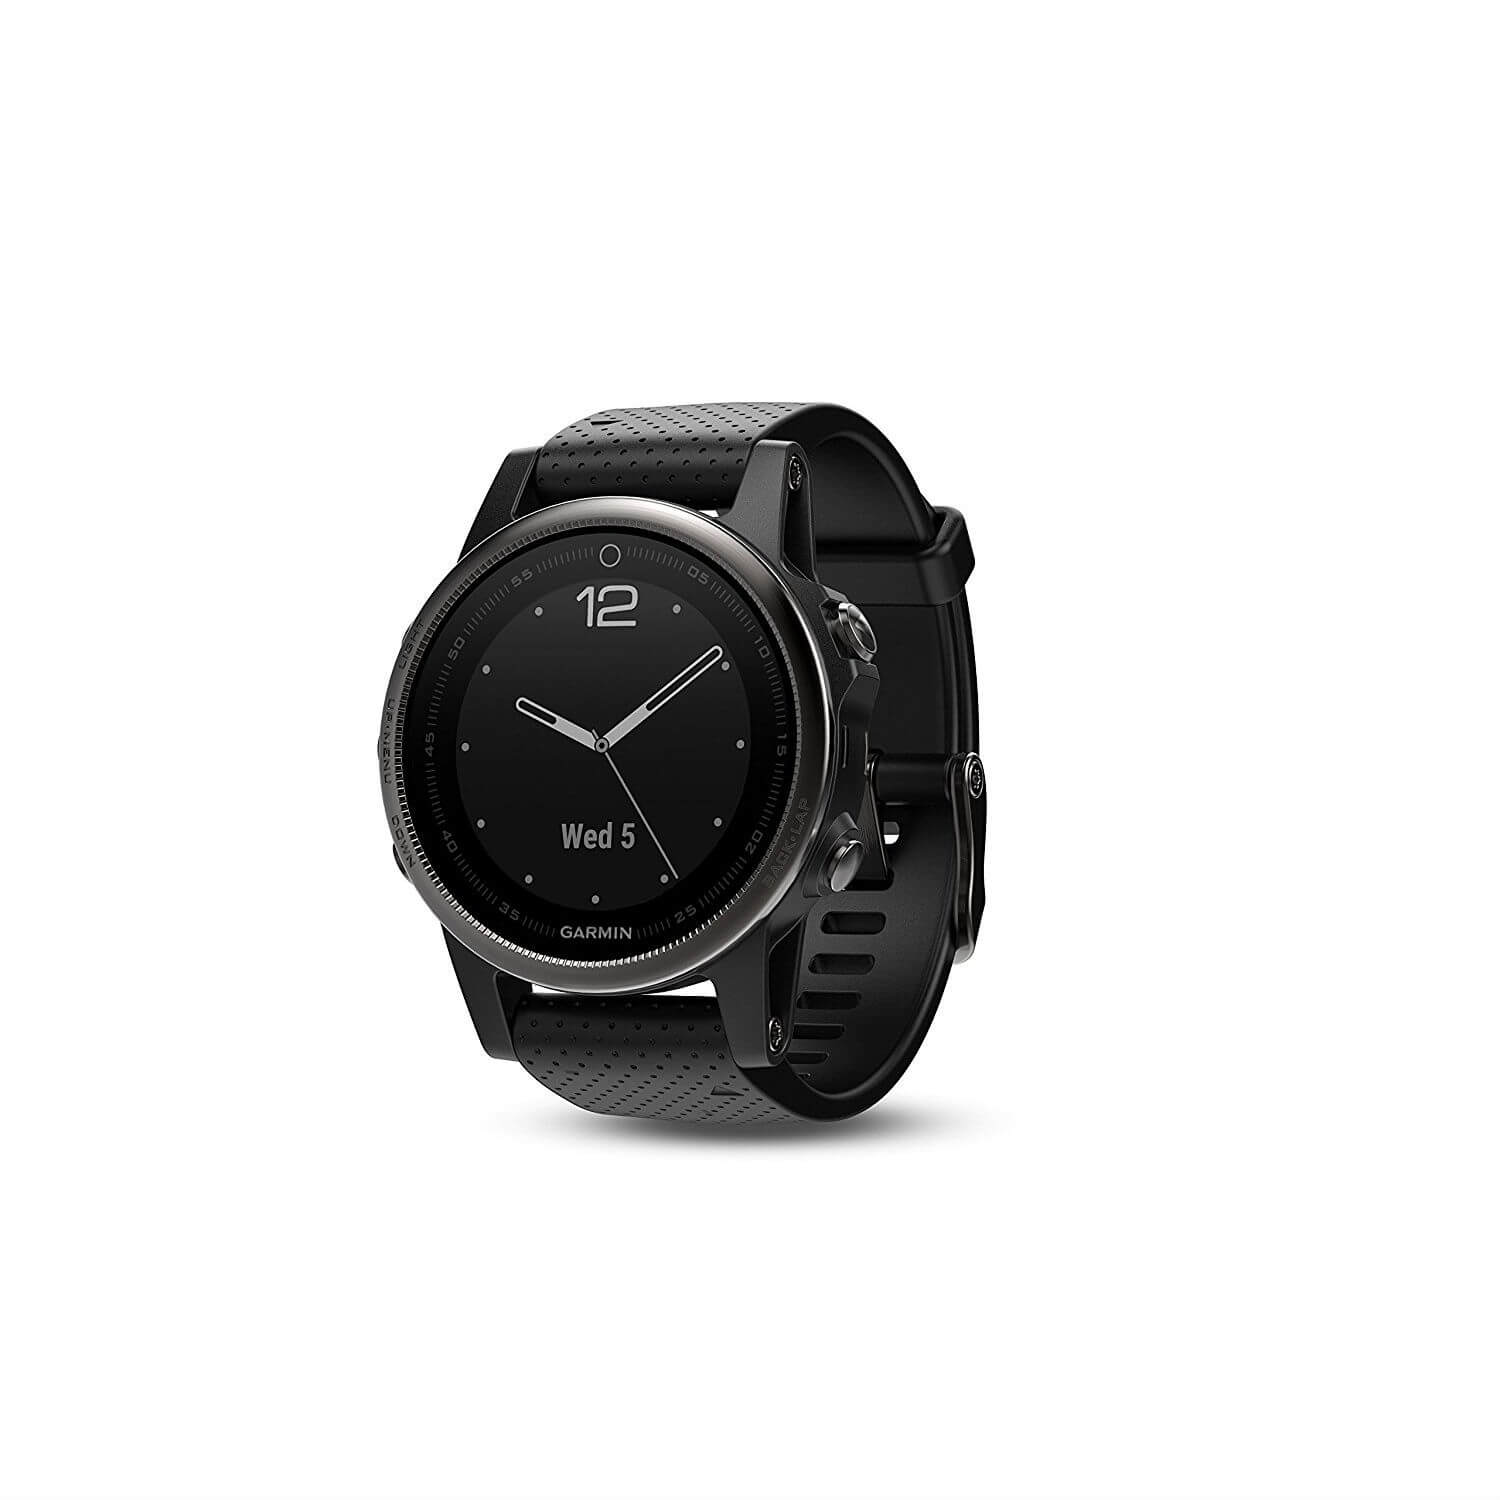 watch training sapphire fenix en garmin hr components bike gps